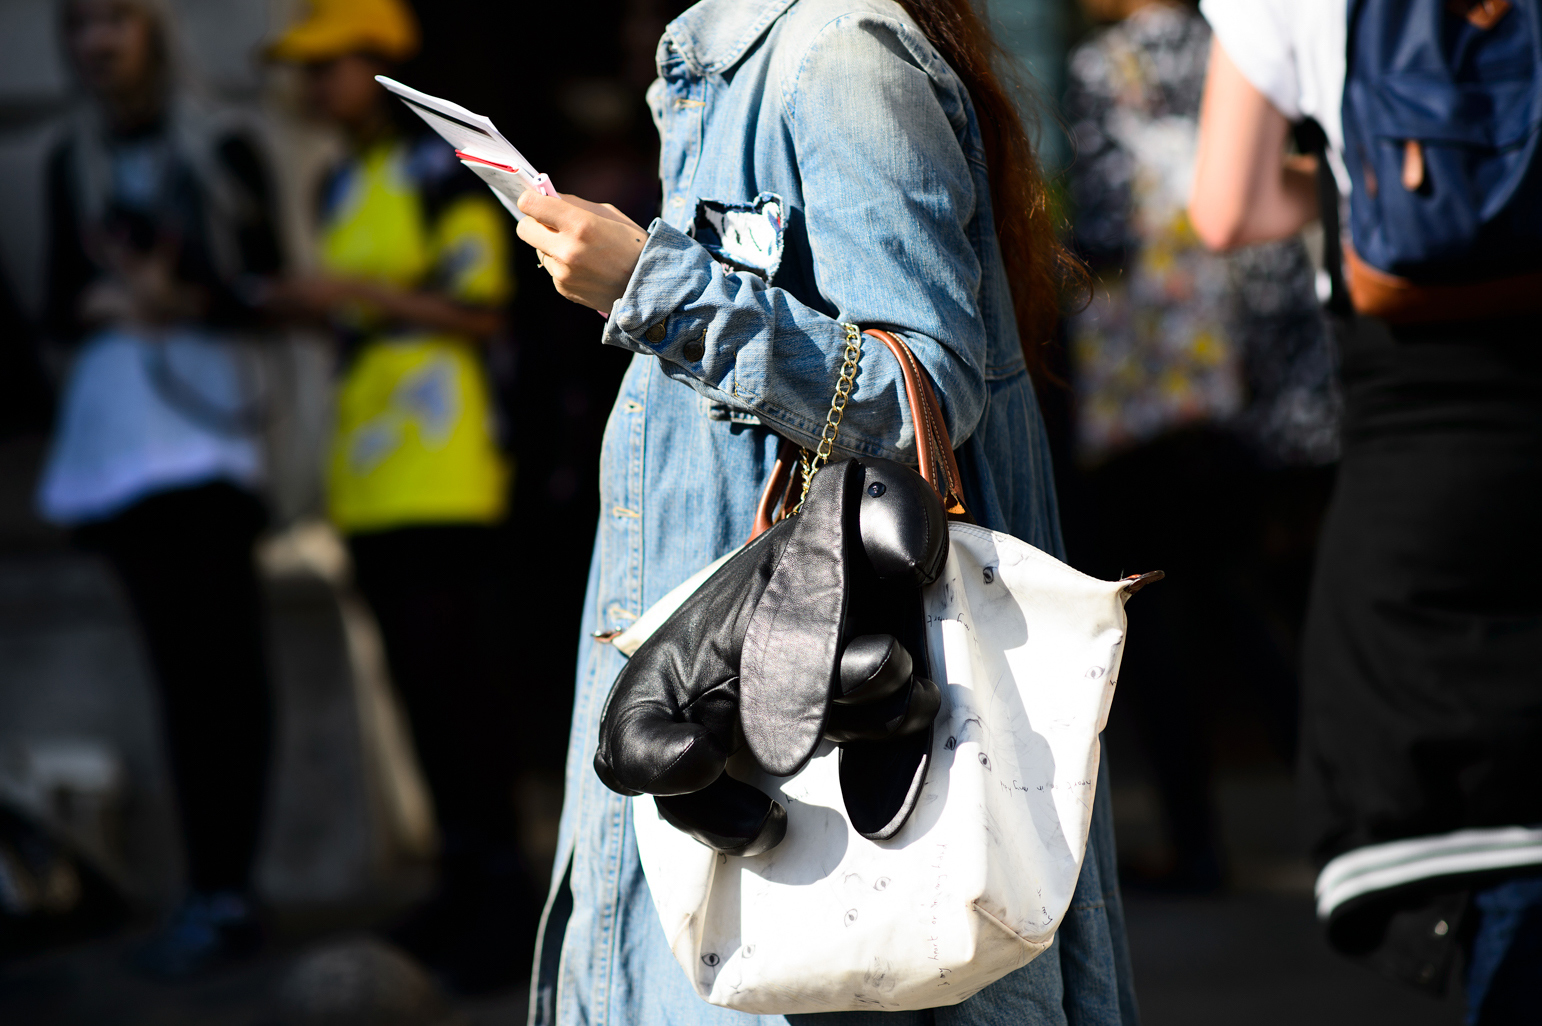 london-spring-2015-street-style-day-1-11-w-mag4